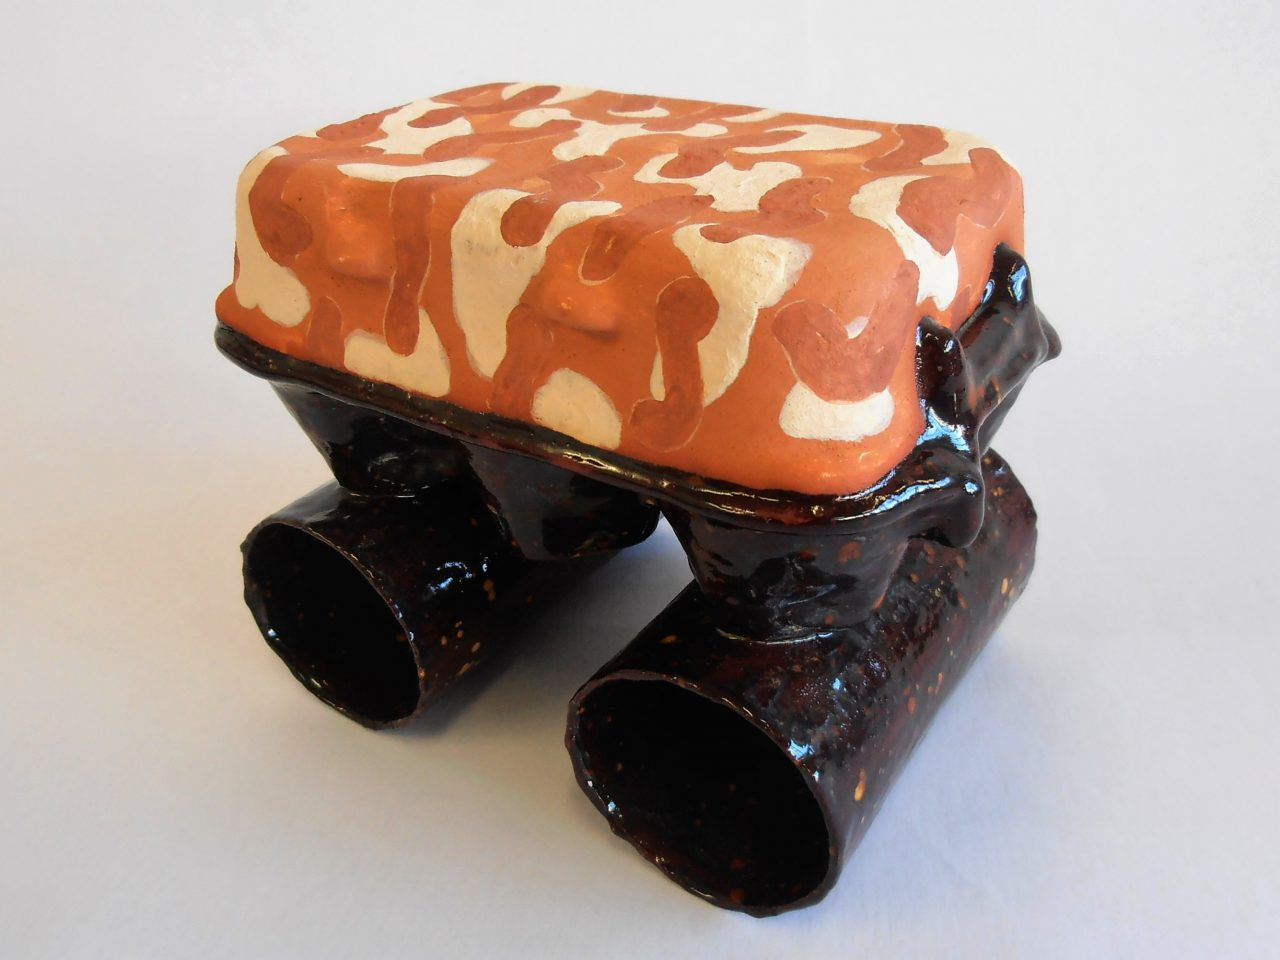 terracotta paperclay / glazed earthenware [test: safe mode]